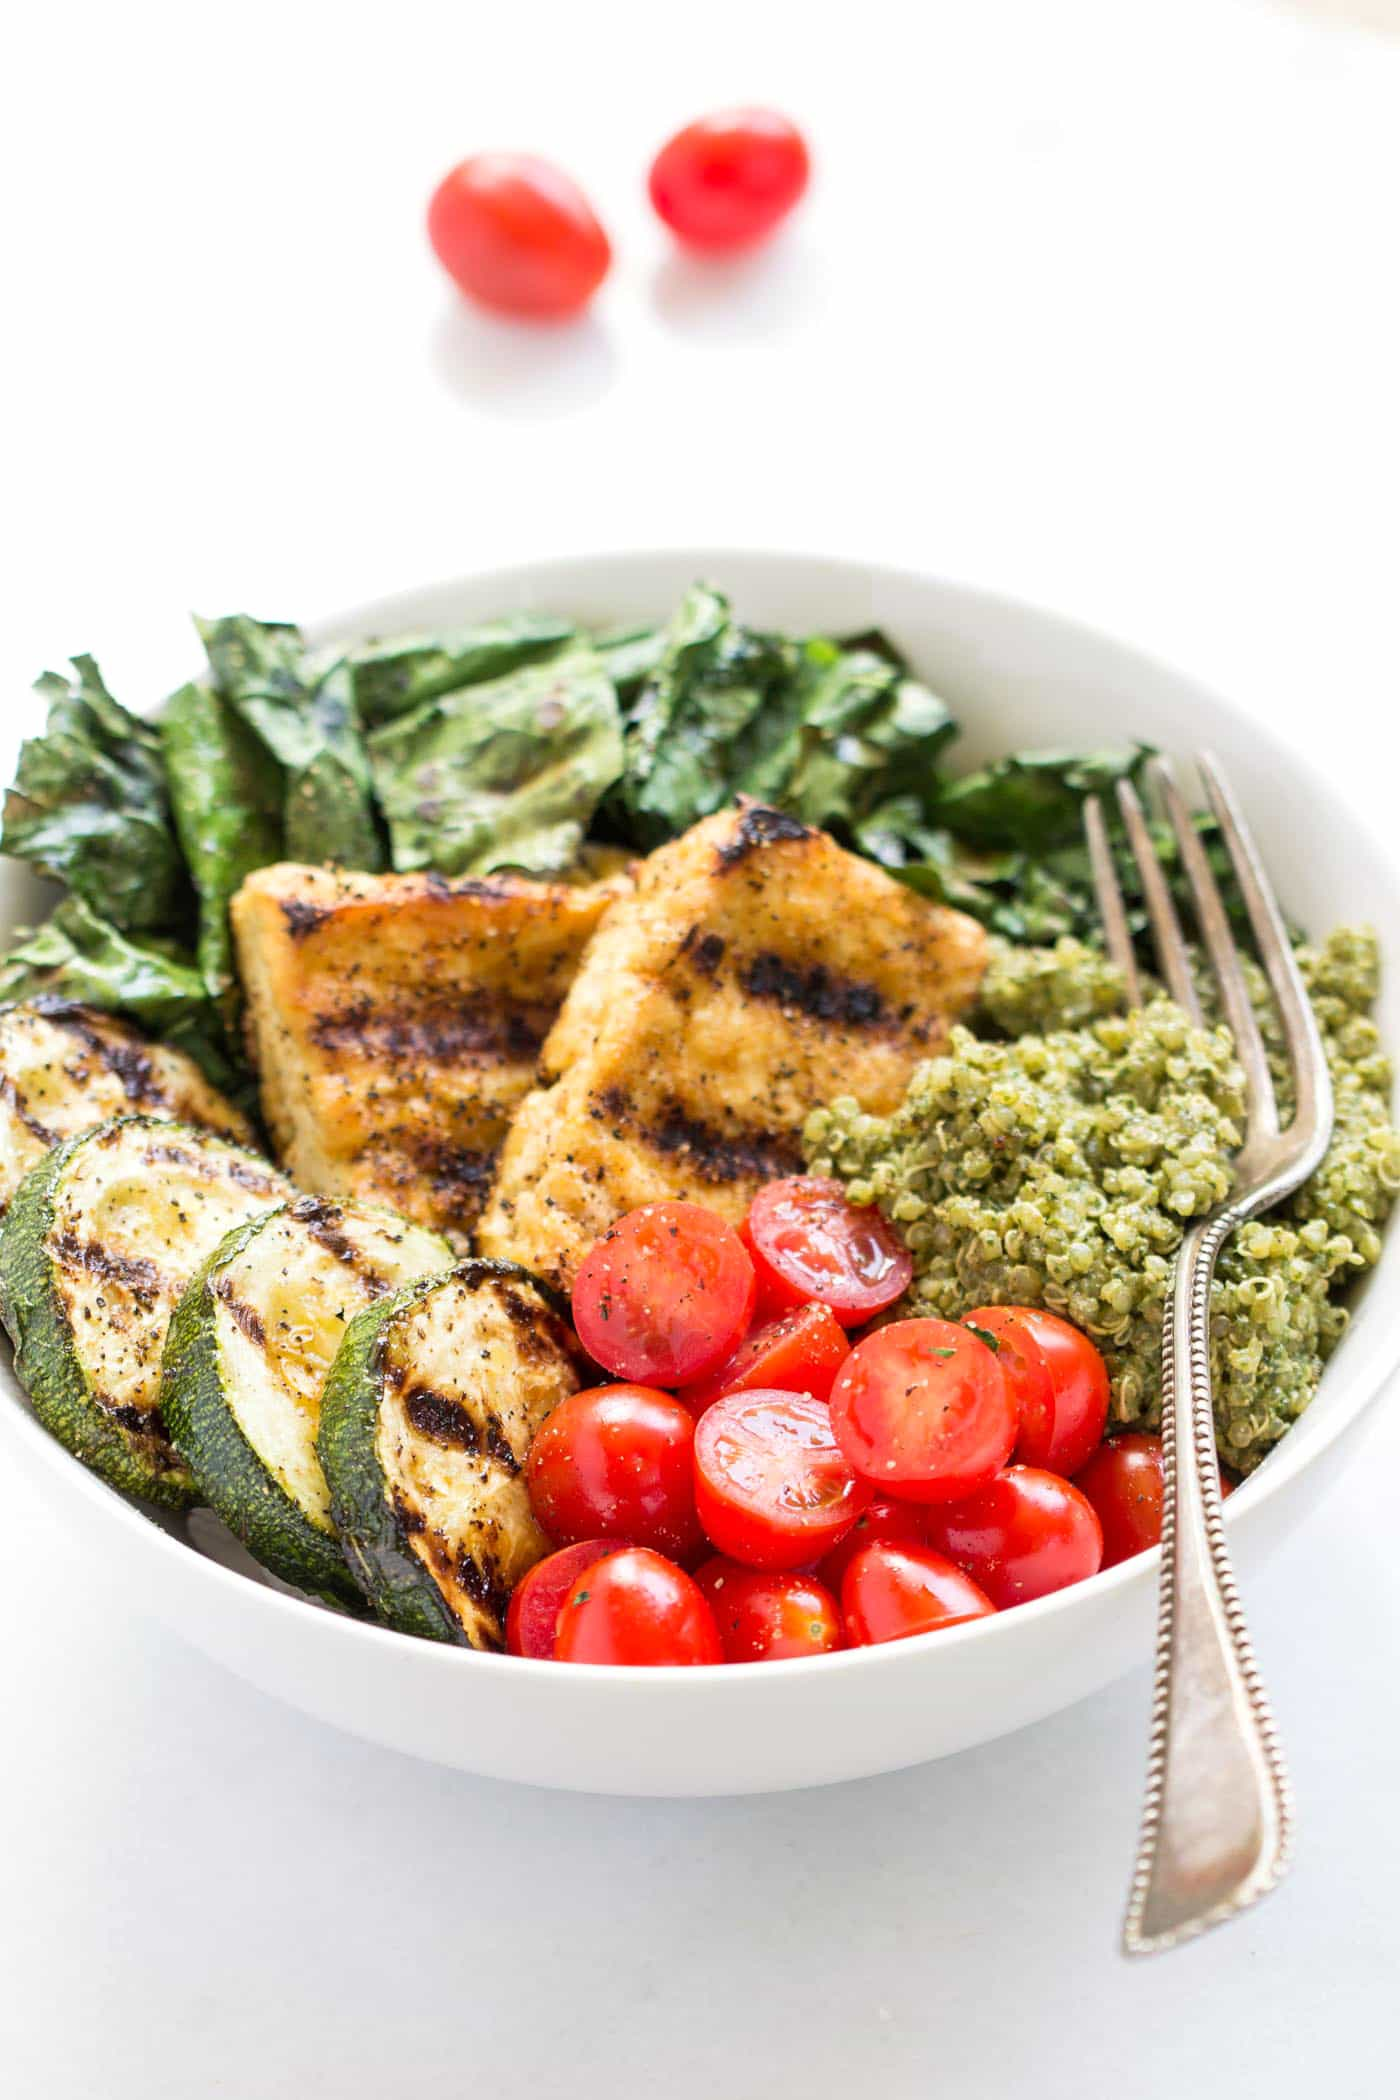 These simple pesto quinoa bowls are amazing! Topped with grilled veggies, tofu and chopped cherry tomatoes!